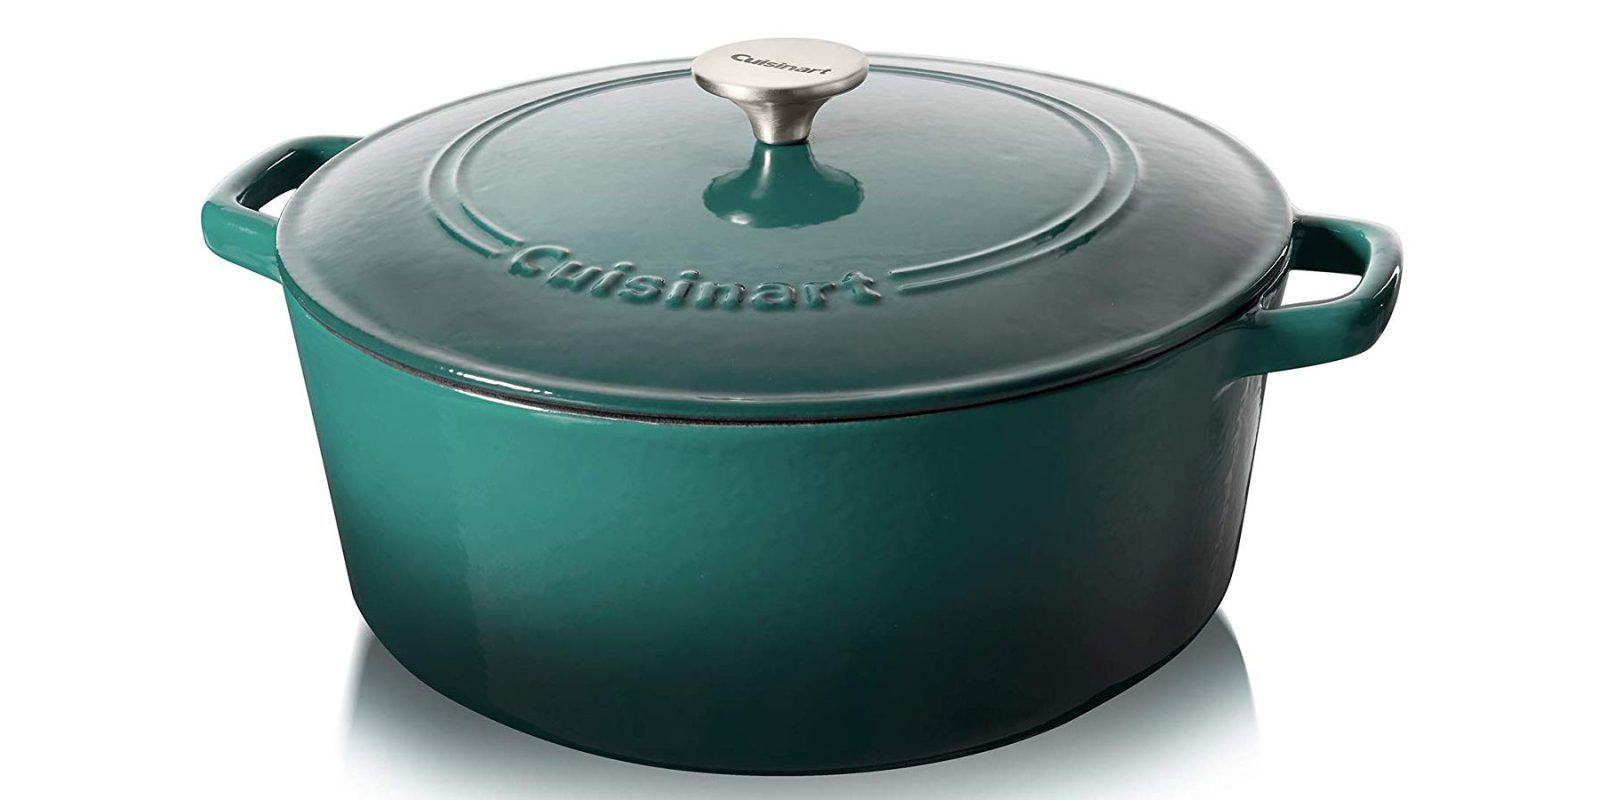 Cuisinart cast iron 7-Qt. round casserole now $60 for today only (Reg. $100+)